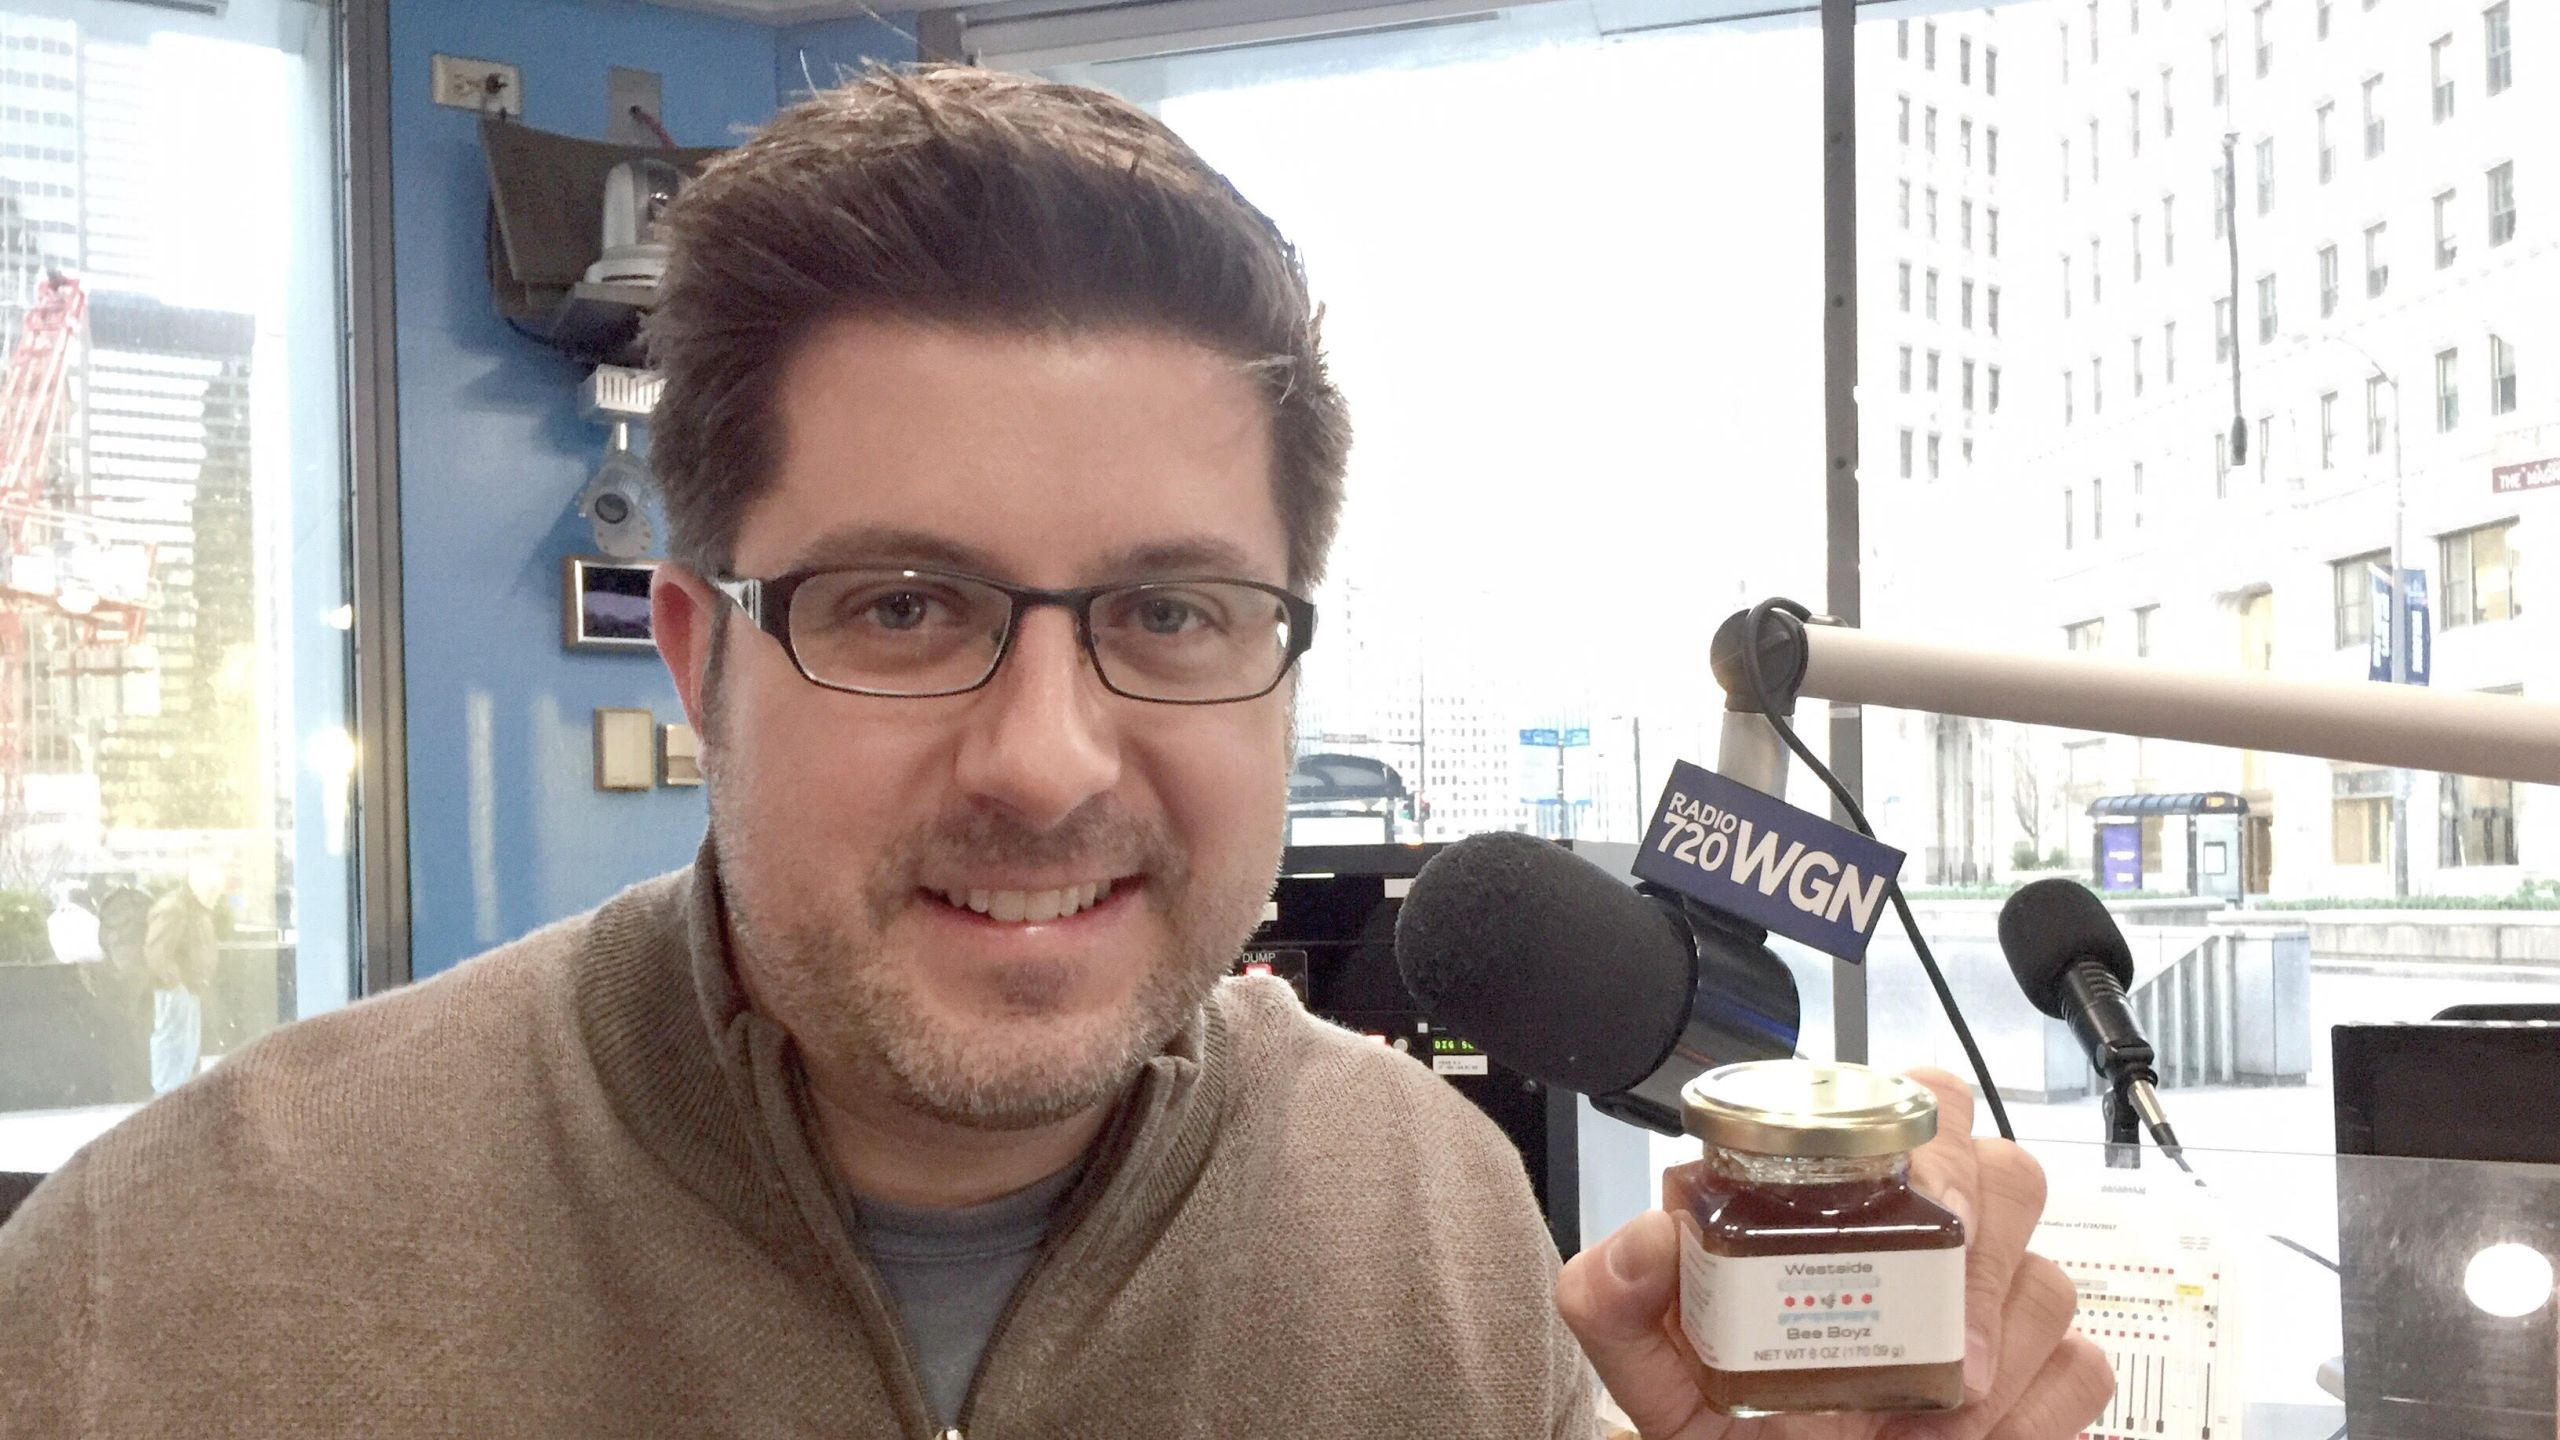 OTL host Mike Stephen shows off his Westside Bee Boyz honey... which he tried out in his official radio show tea this morning.